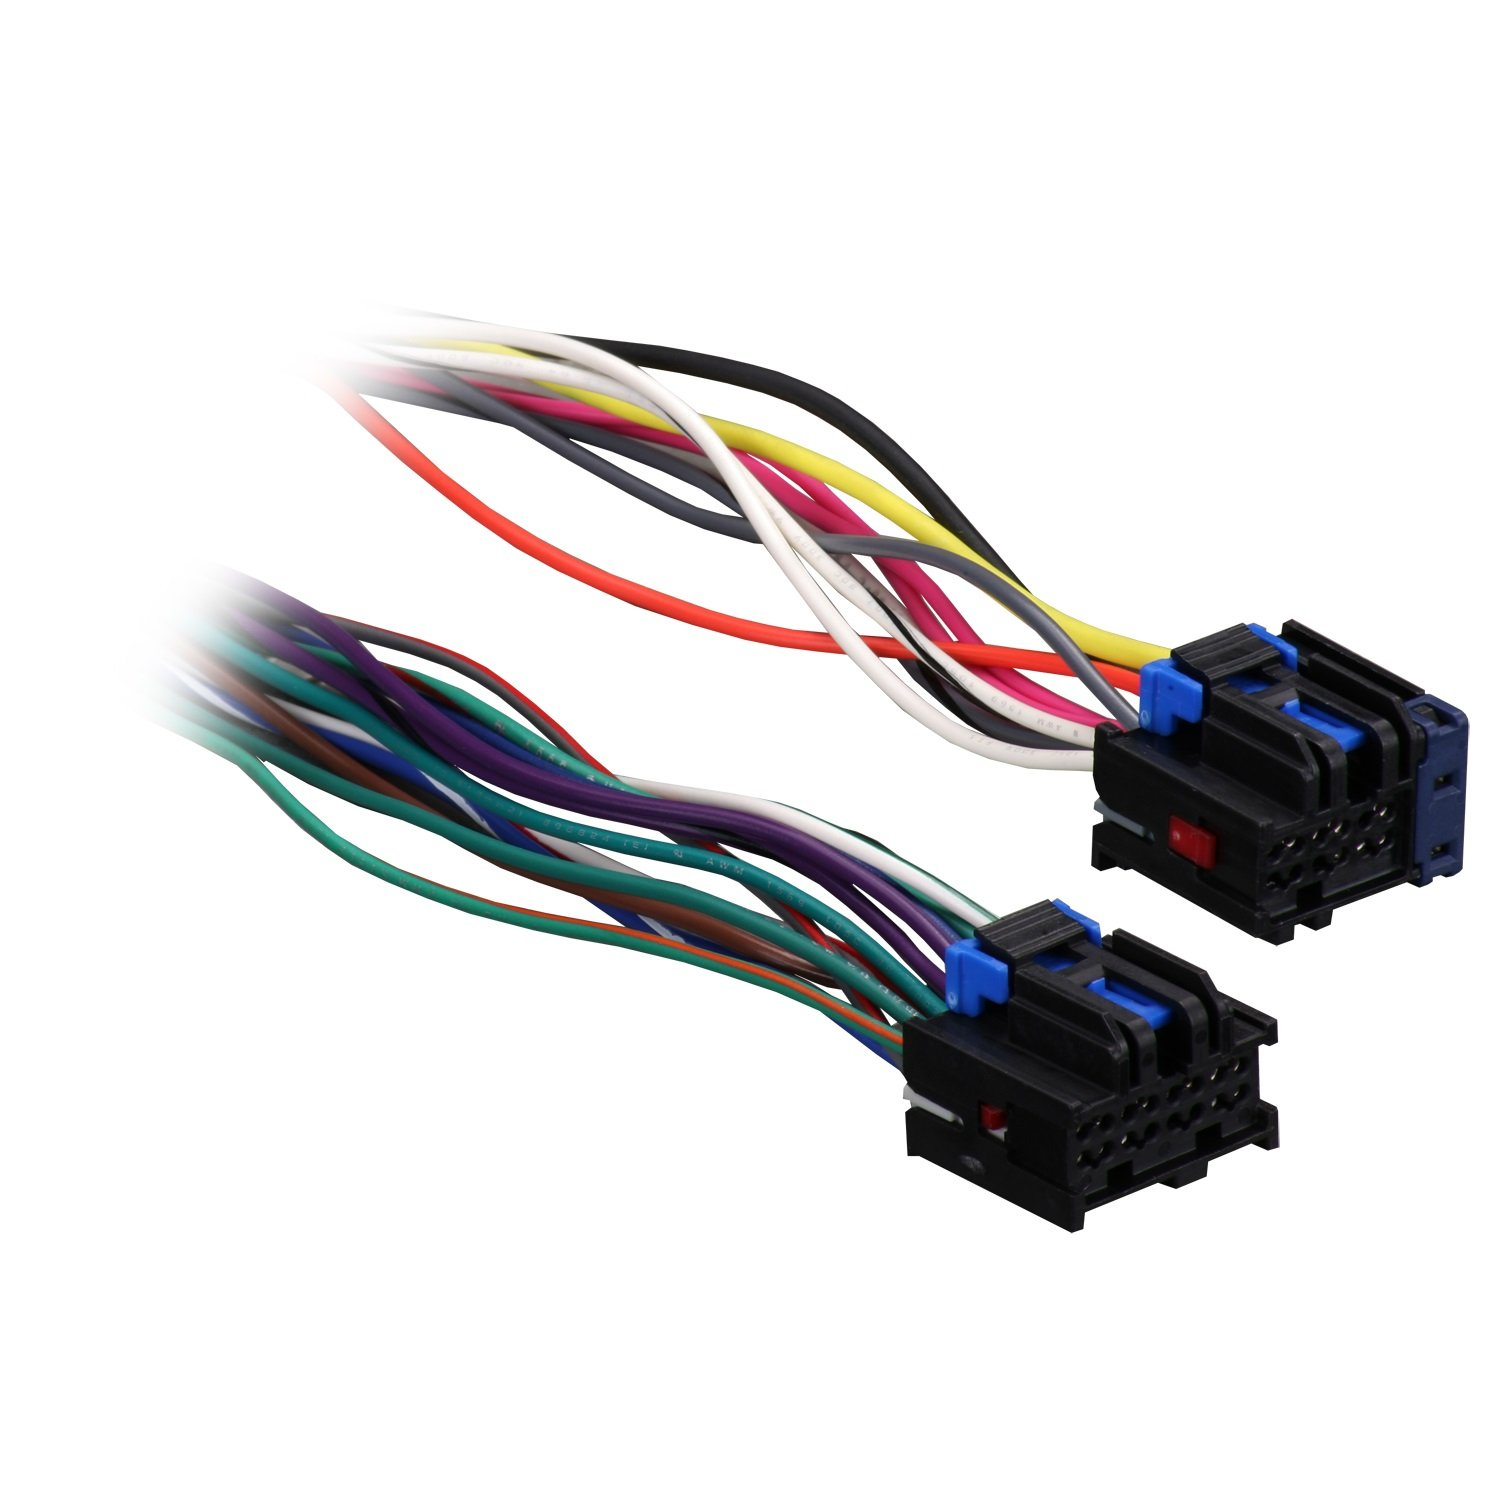 71iZfz2brnL._SL1500_ amazon com metra reverse wiring harness 71 2104 for select gm  at panicattacktreatment.co